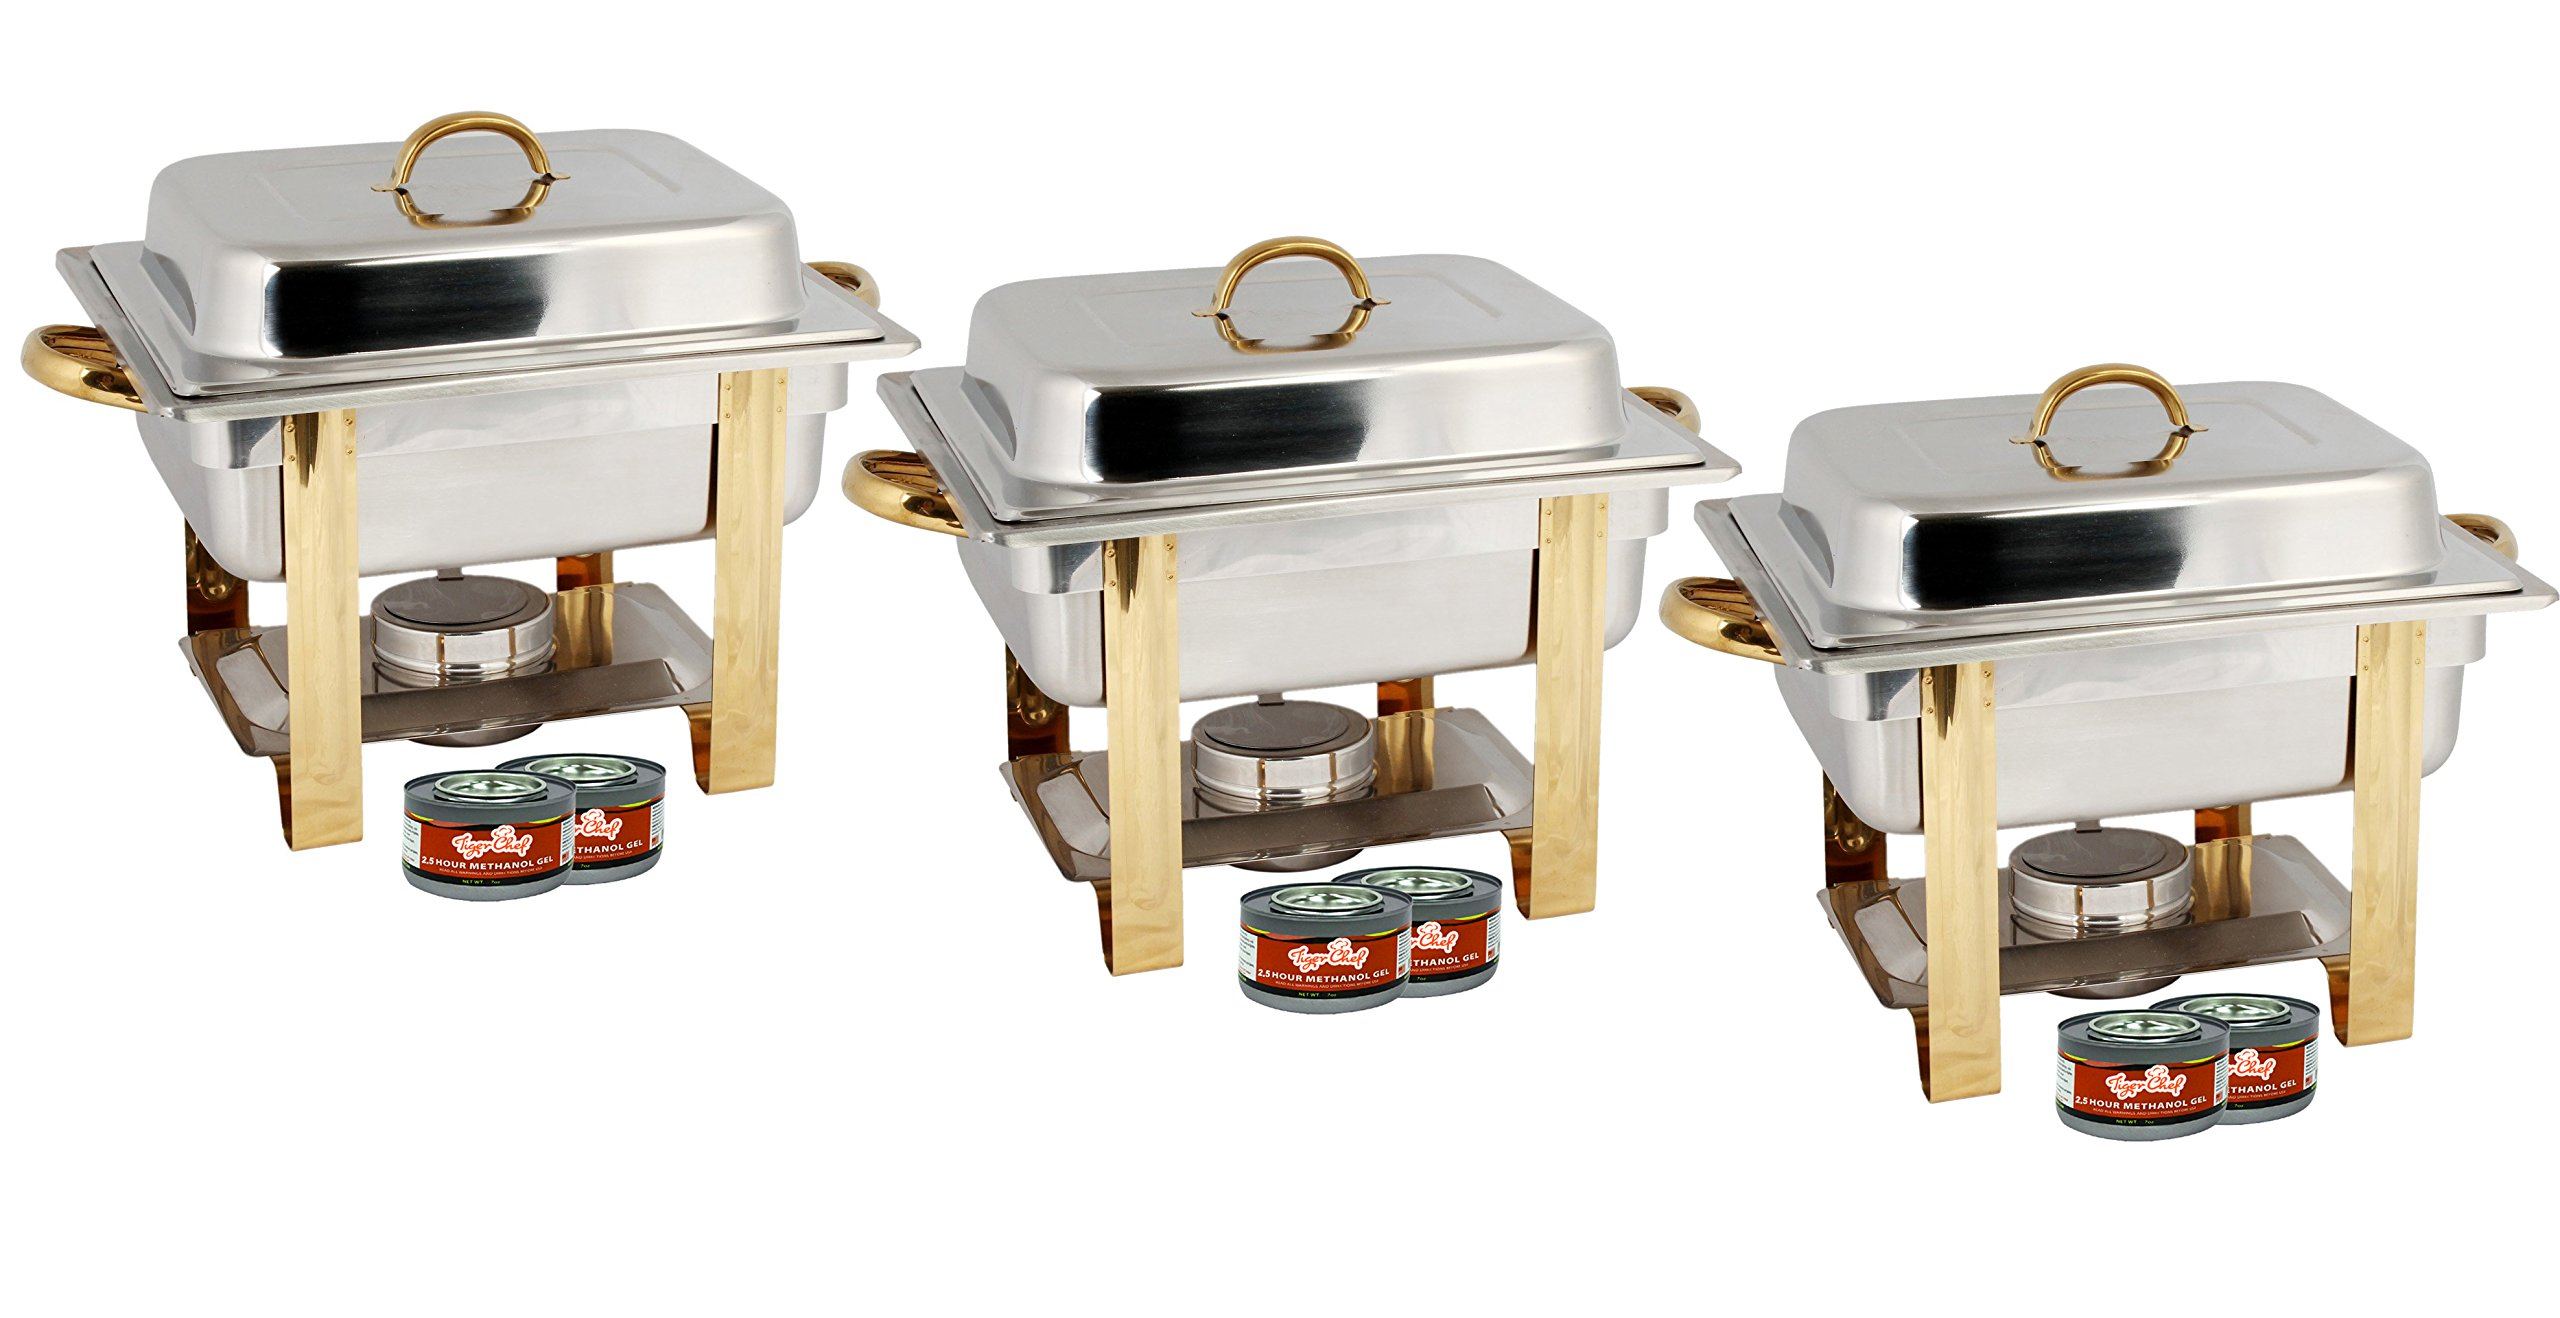 TigerChef TC-20550 Half Size Chafing Dish Buffet Warmer Set, Gold Accented, Includes 6 Free Chafing Fuel Gels, Stainless Steel, 4 Quart